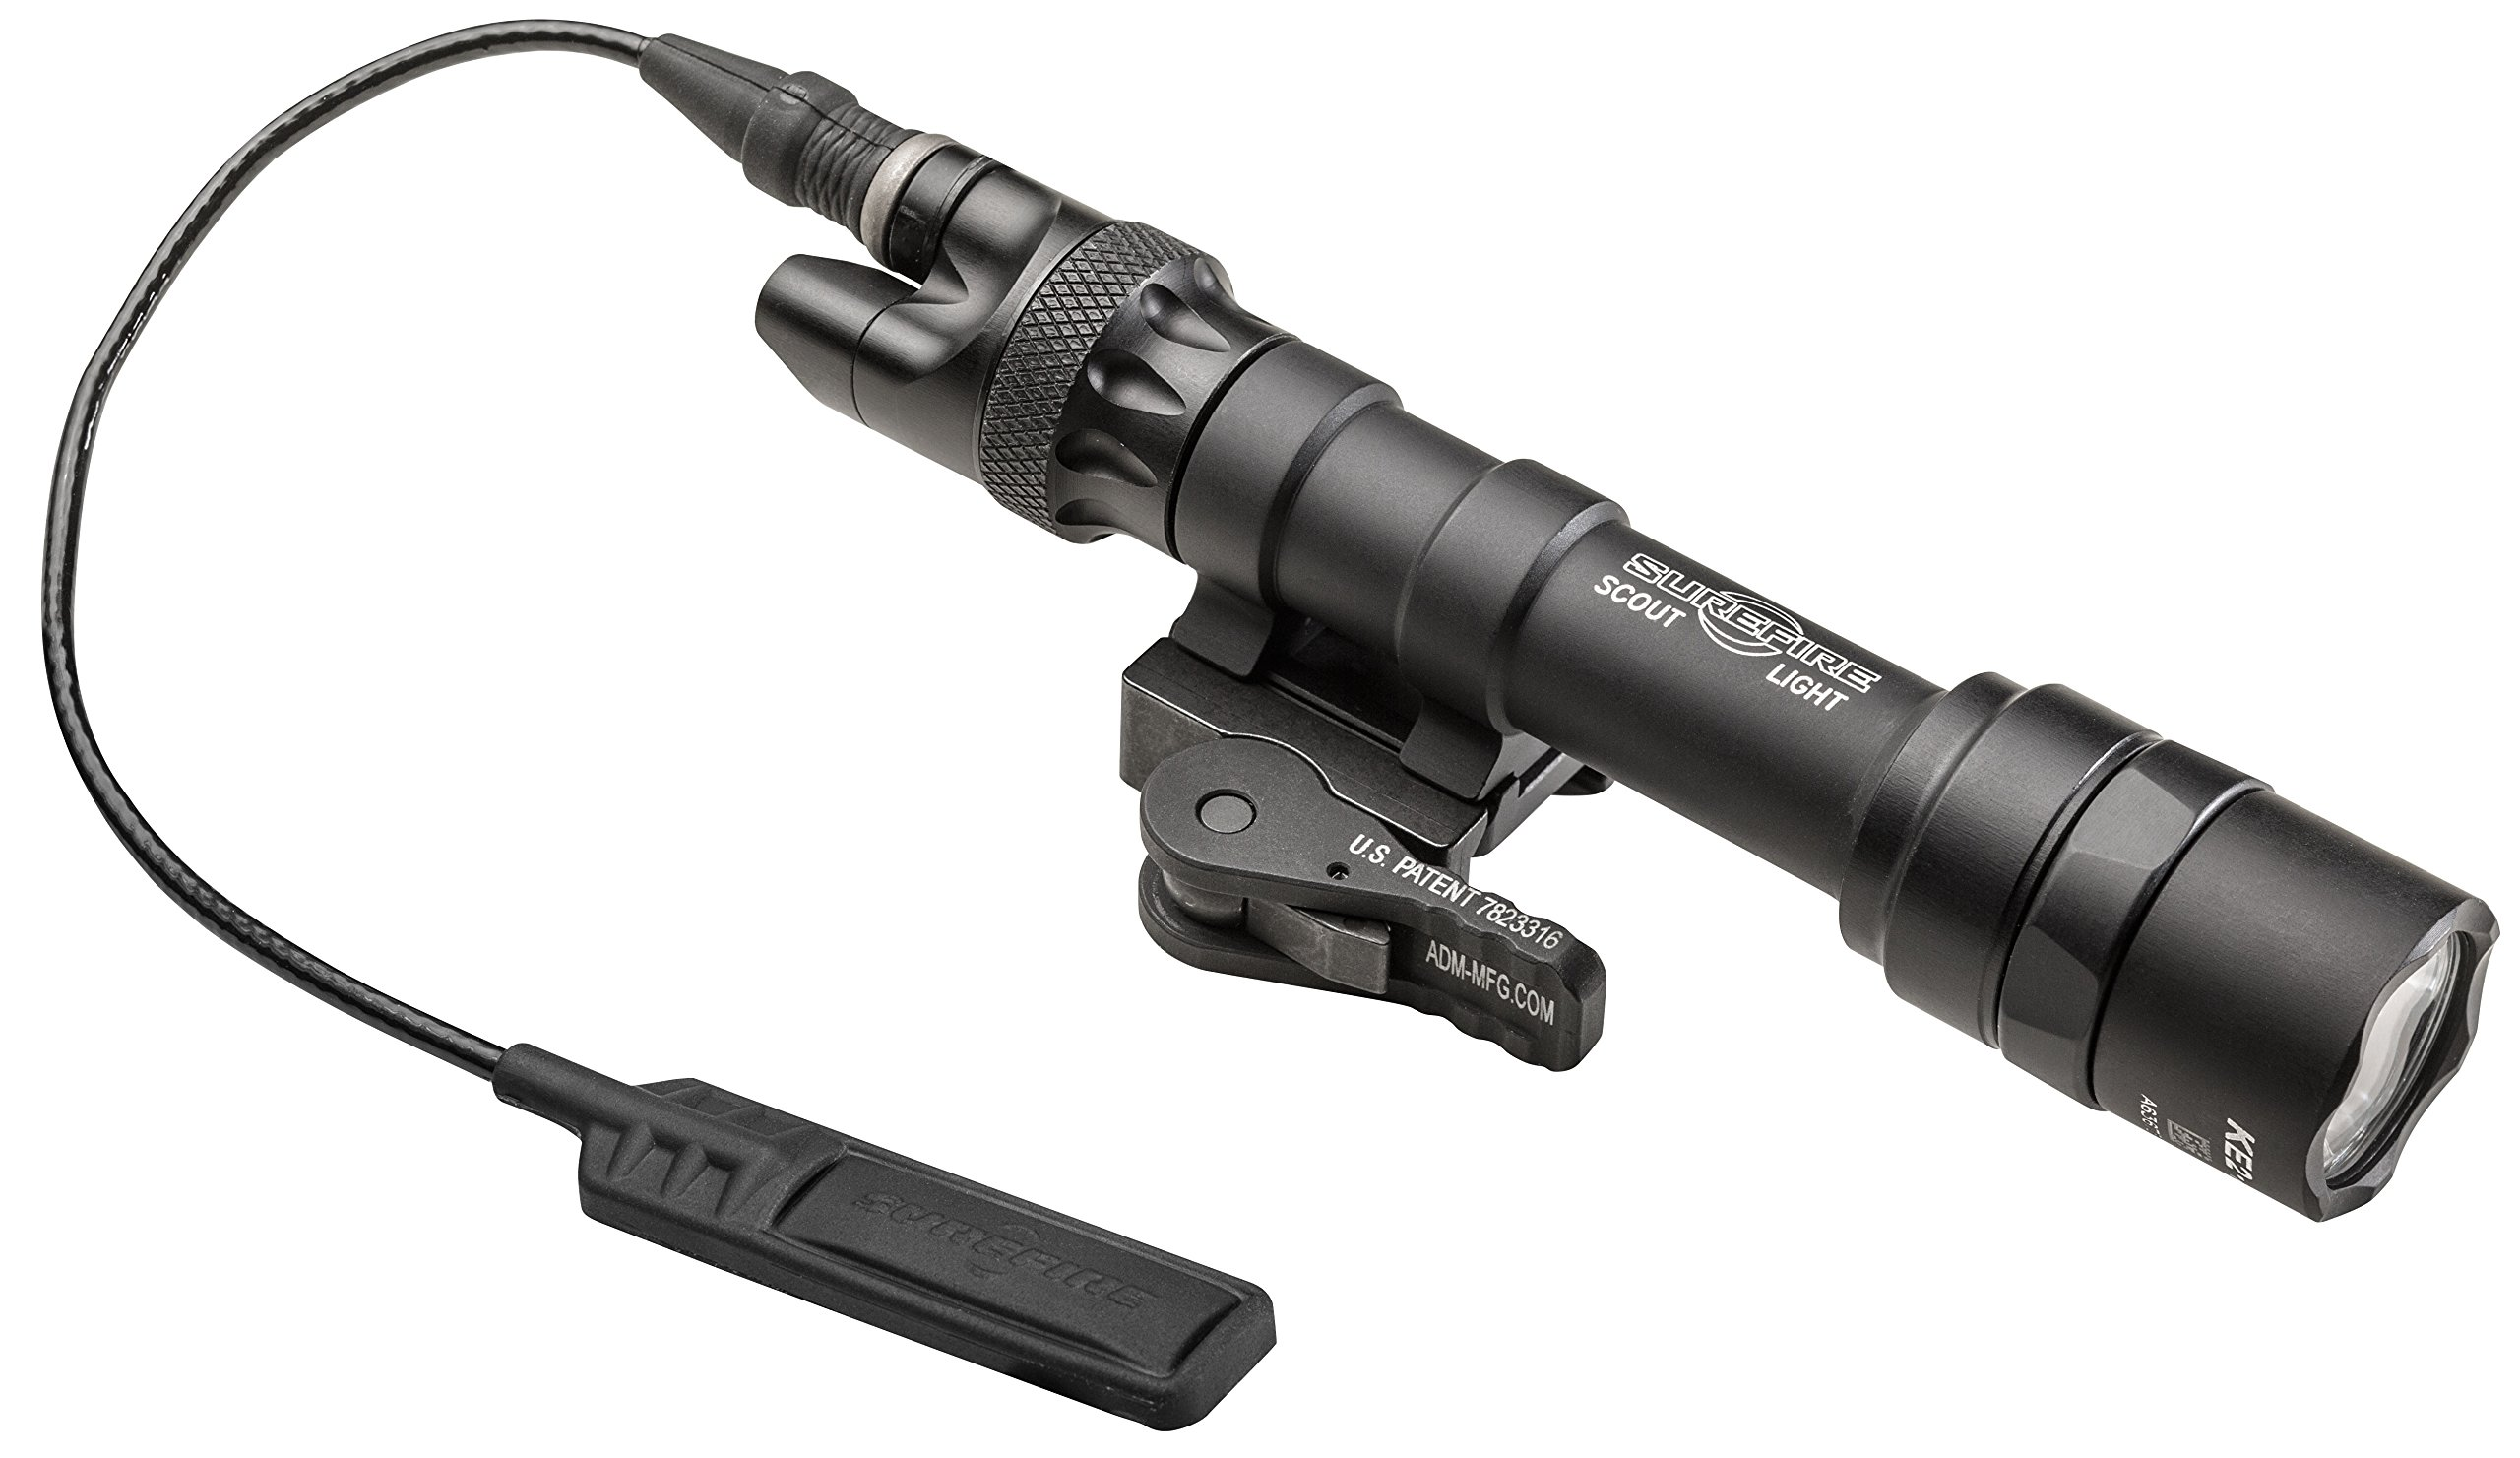 SureFire M622U Ultra Scout Light with ADM Mount & DS07 Switch by SureFire